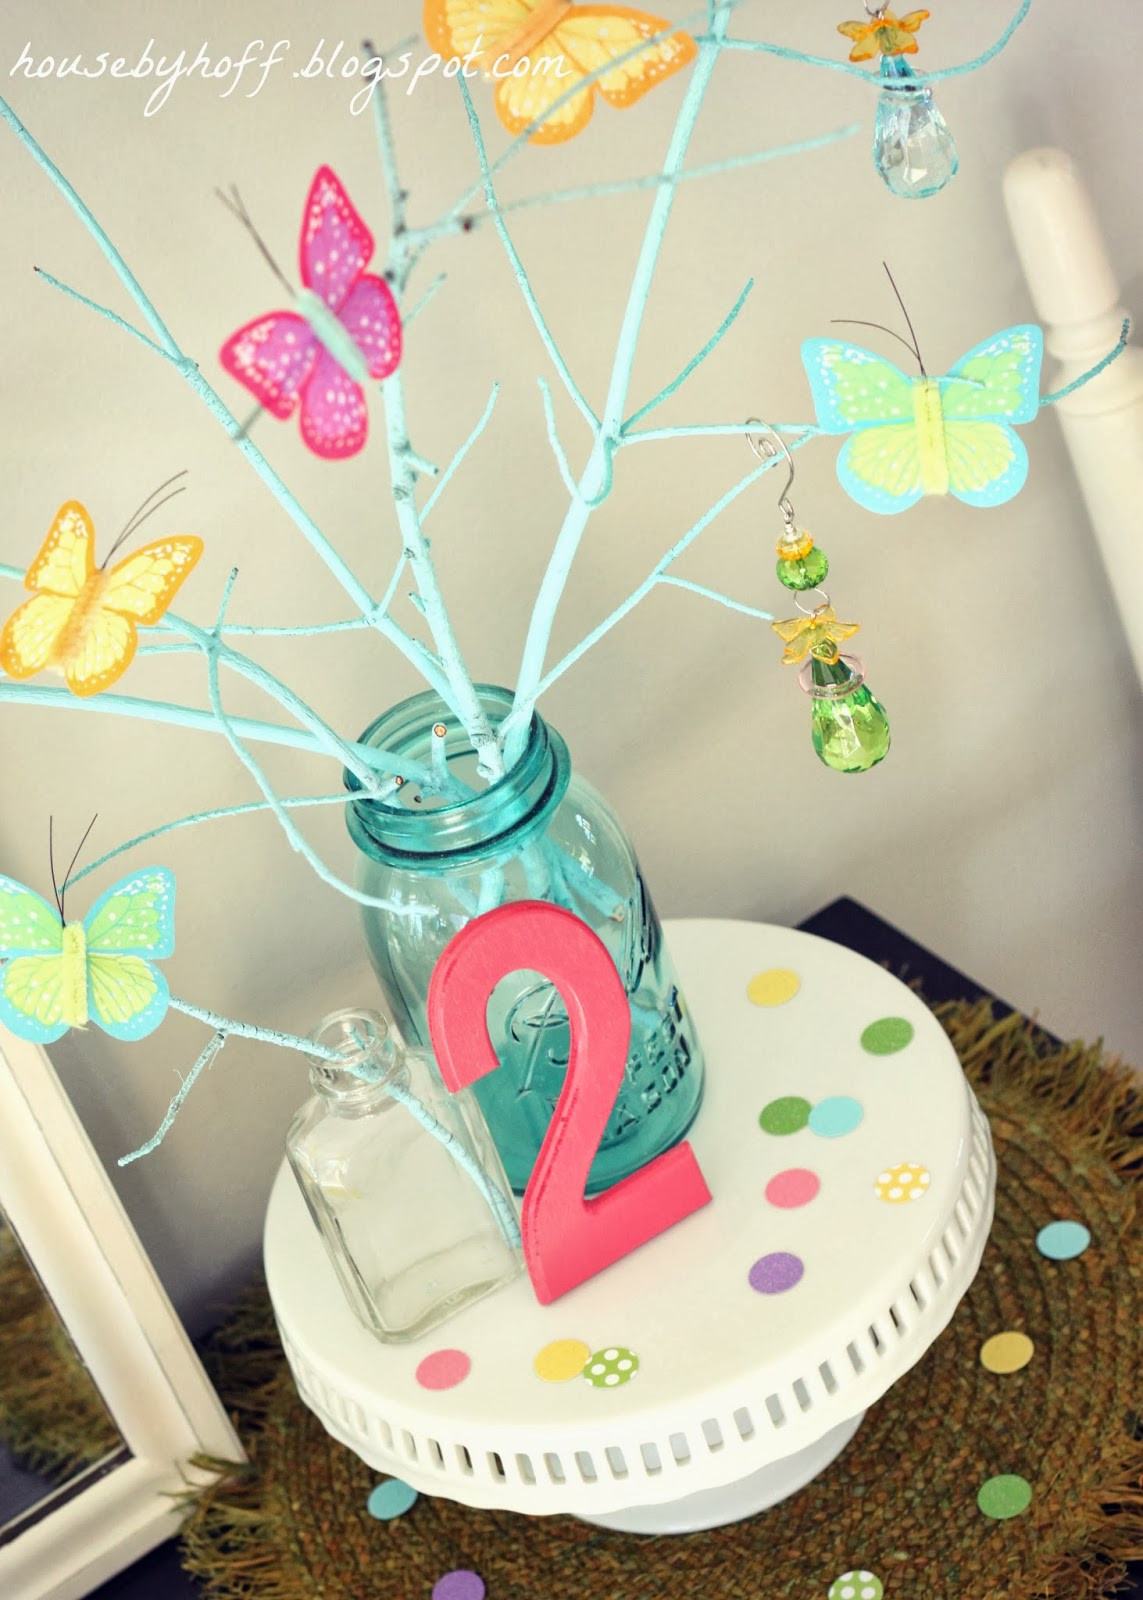 Best ideas about Butterfly Birthday Party Decorations . Save or Pin A Butterfly Picnic Birthday Party House by Hoff Now.